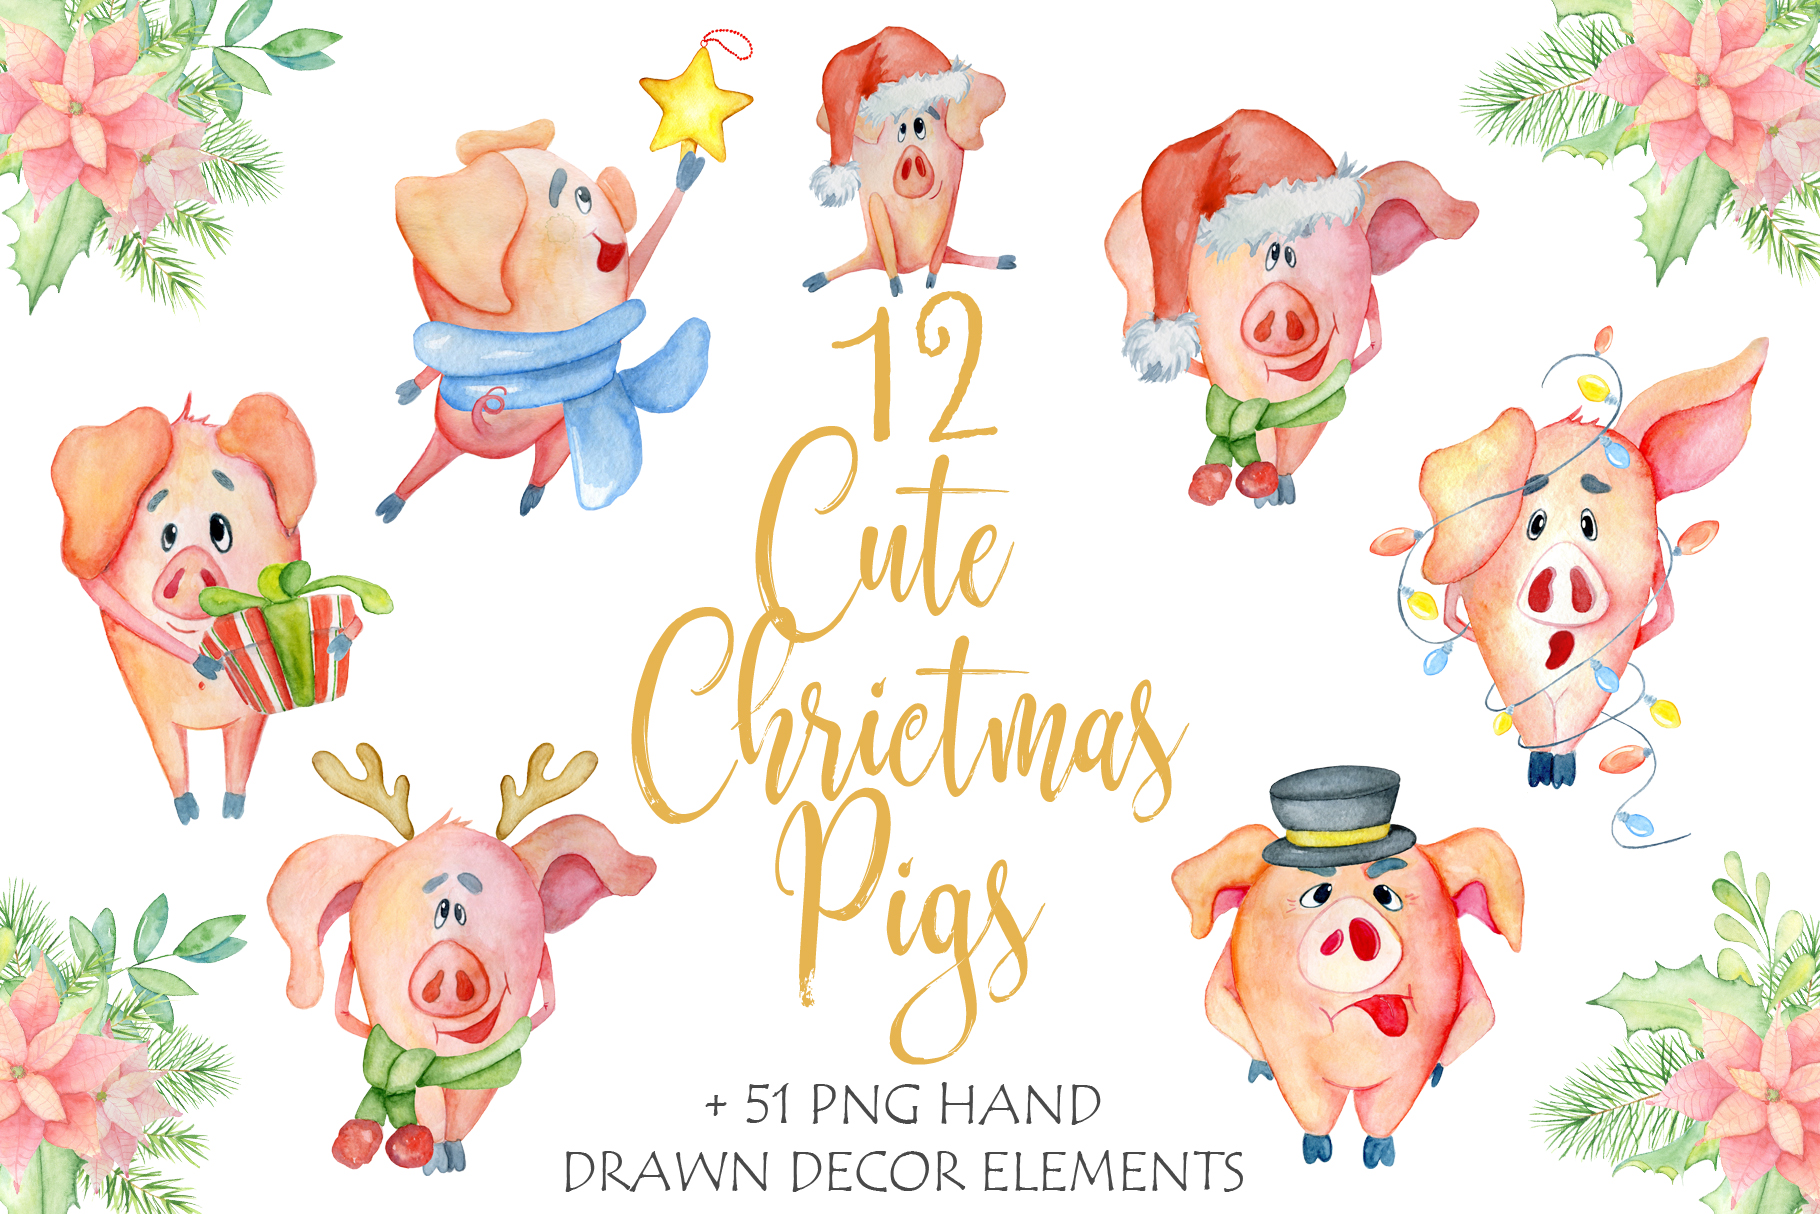 Cute Christmas pigs with decor elements for New Year 2019 example image 1